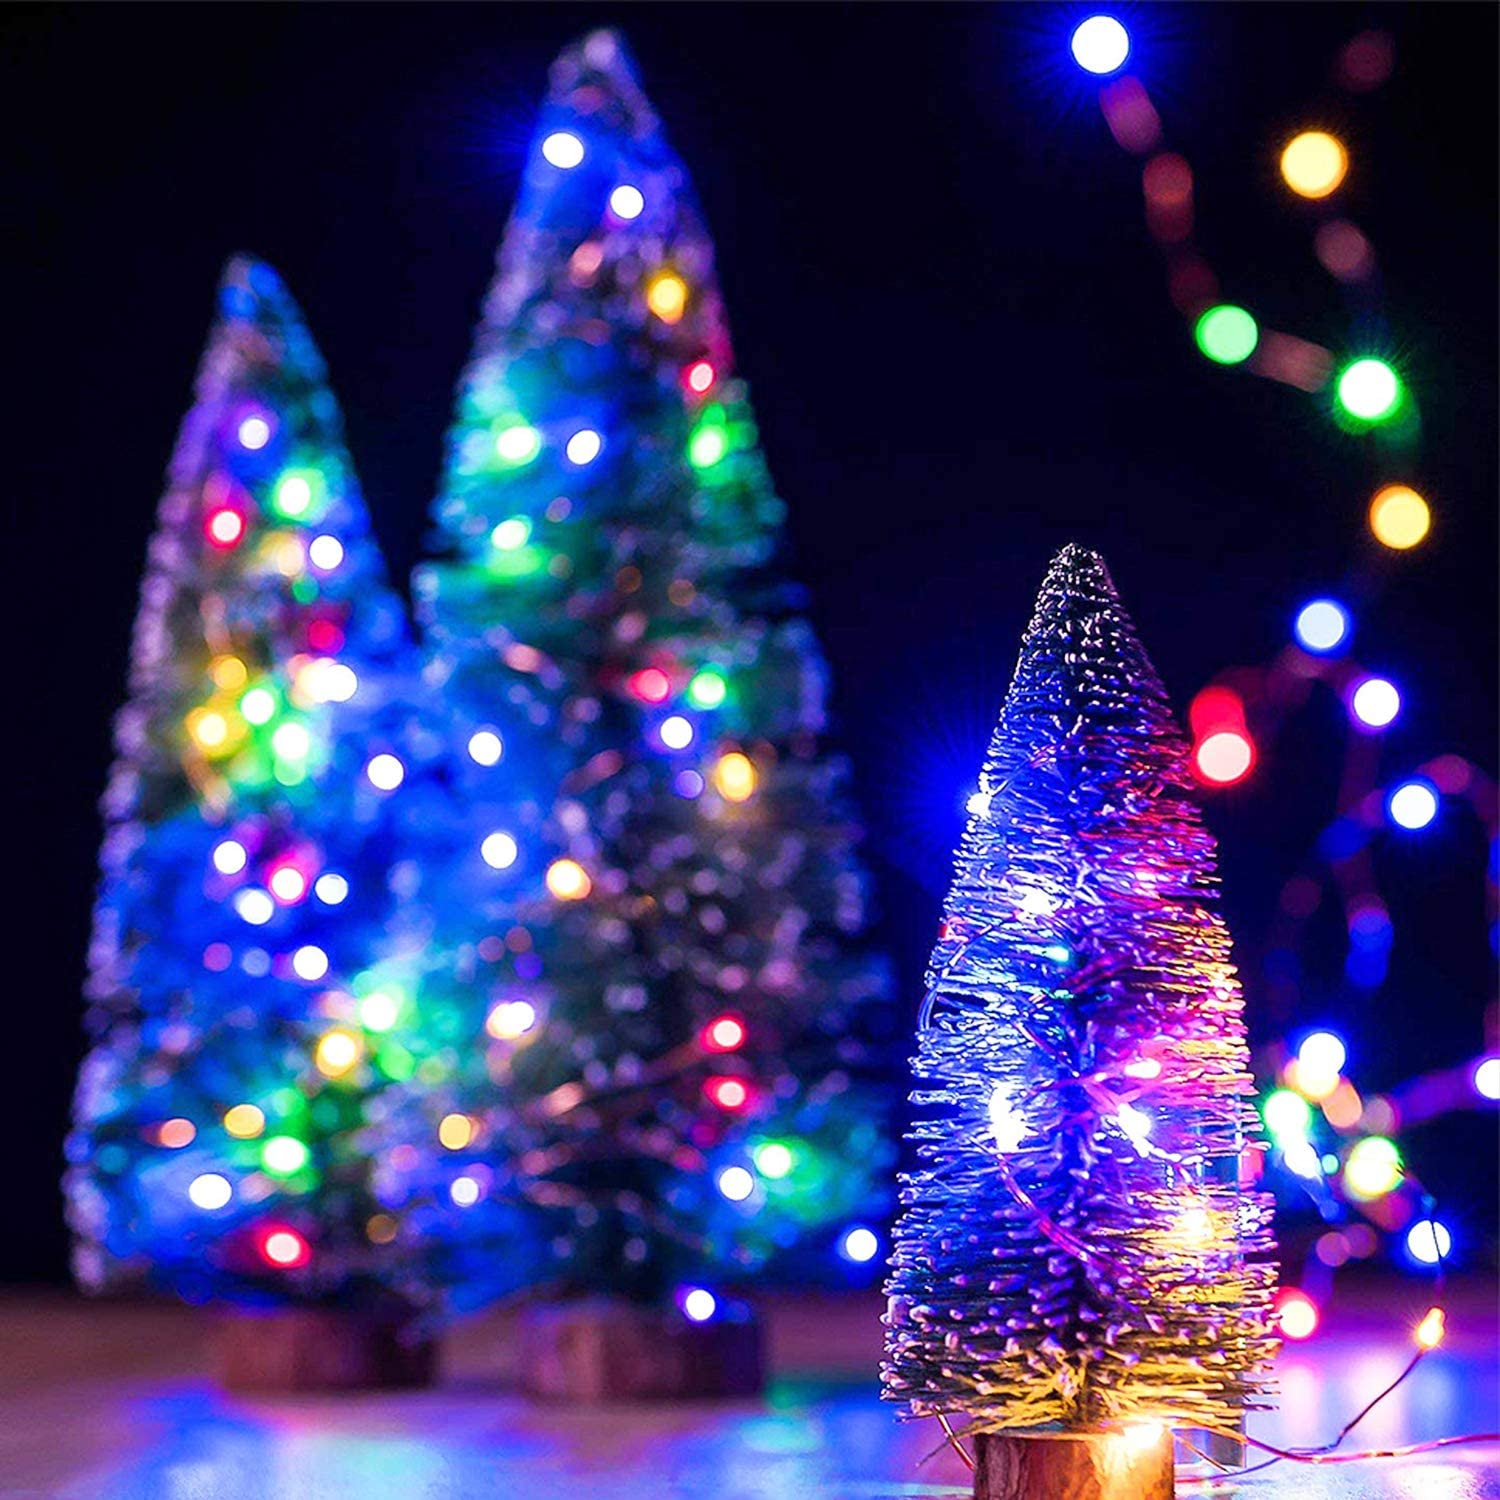 H30acf3c6da834d018794b8814ec1789bA - Led Outdoor Solar String Lights Fairy Holiday Christmas For Christmas, Lawn, Garden, Wedding, Party and Holiday(1/2Pack)